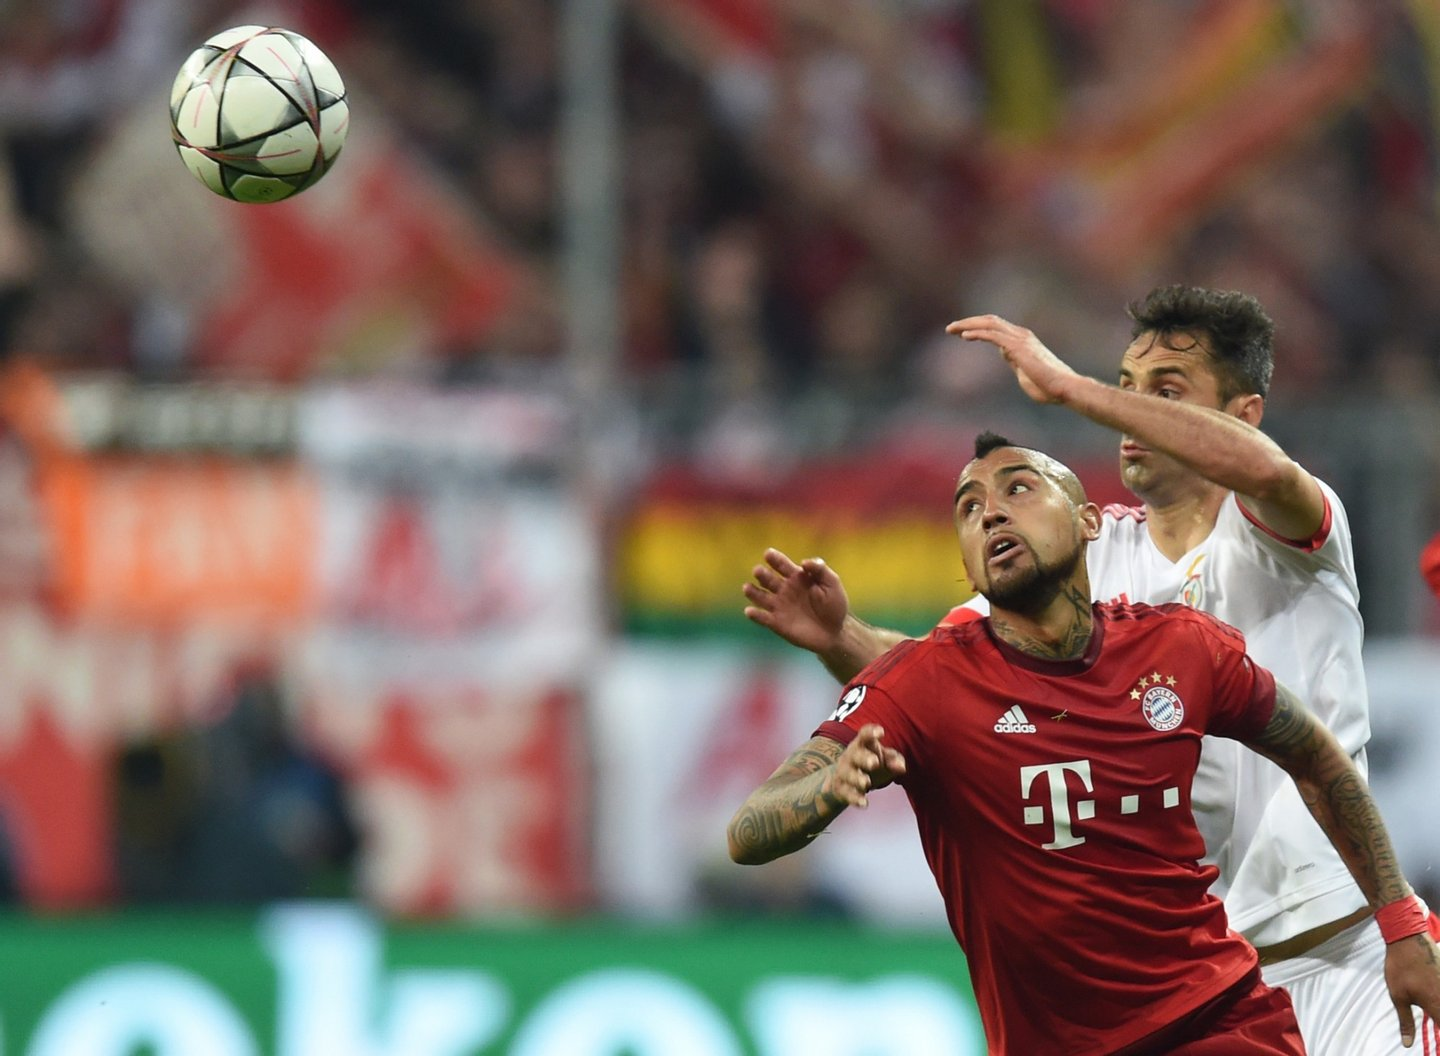 Bayern Munich's Chilean midfielder Arturo Vidal (R) and Benfica's Brazilian forward Jonas vie for the ball during the Champions League quarter-final, first-leg football match between Bayern Munich and Benfica Lisbon in Munich, southern Germany, on April 5, 2016. / AFP / CHRISTOF STACHE (Photo credit should read CHRISTOF STACHE/AFP/Getty Images)